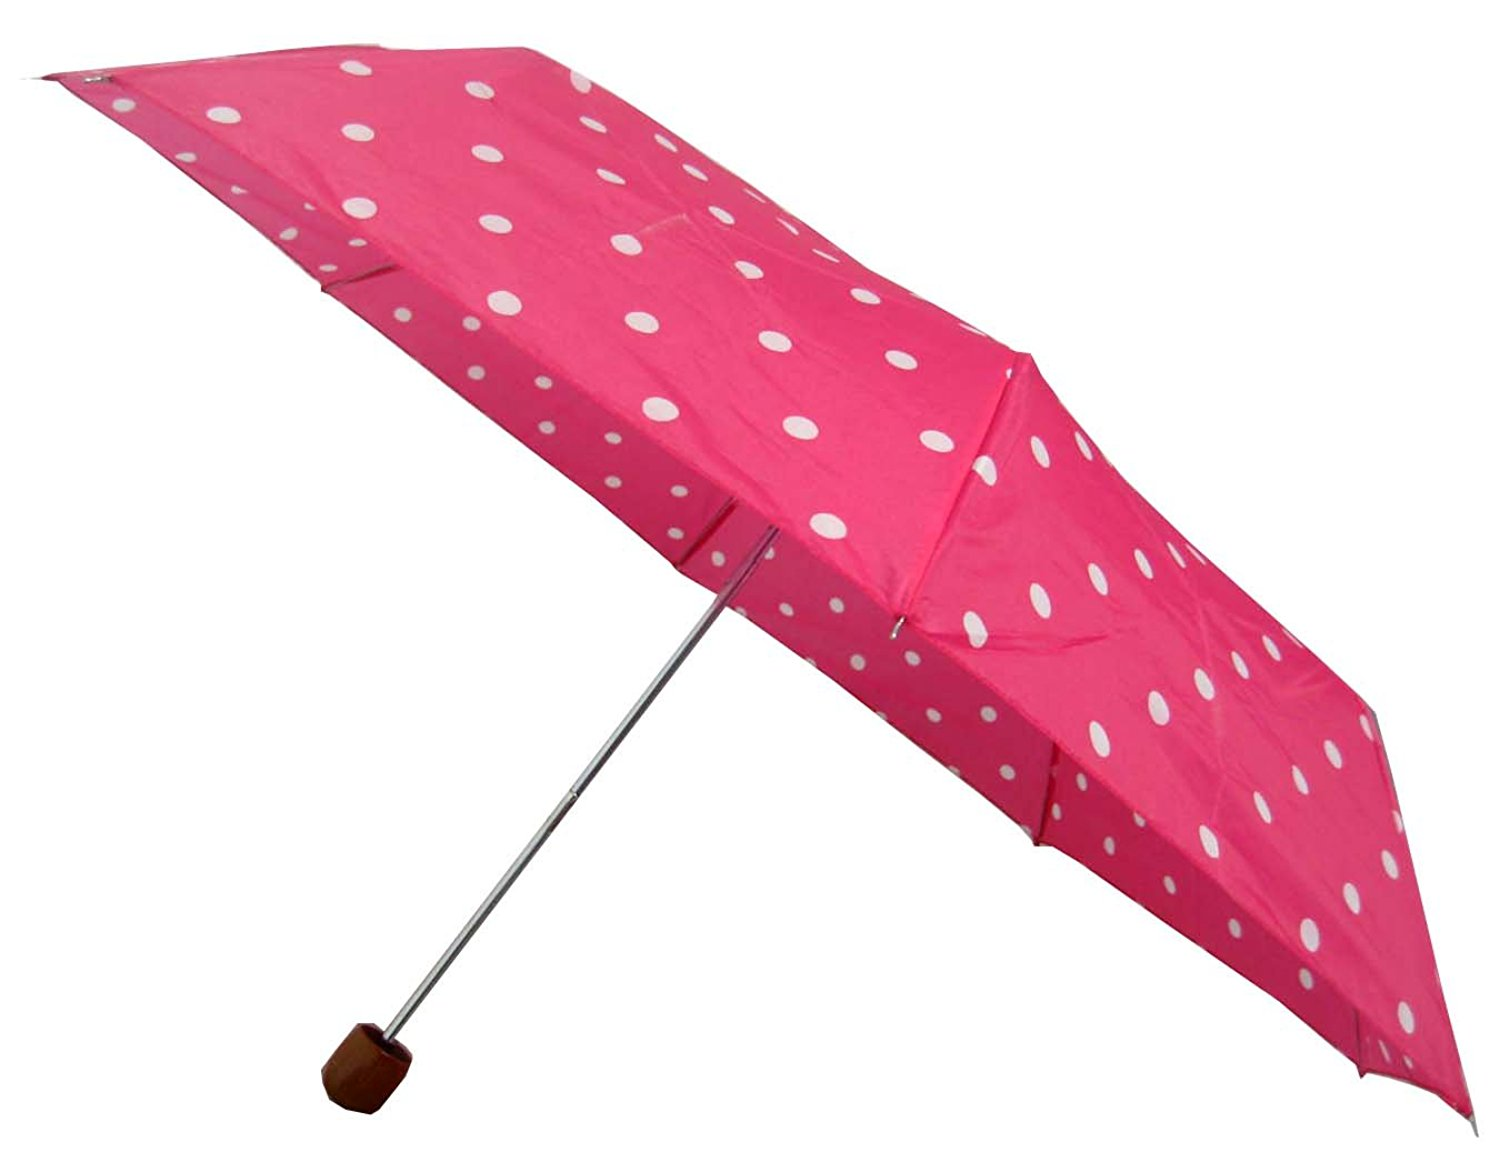 Compact Travel Umbrella Walmart Conch Conch Travel Sport Pink Compact Traveling Polka